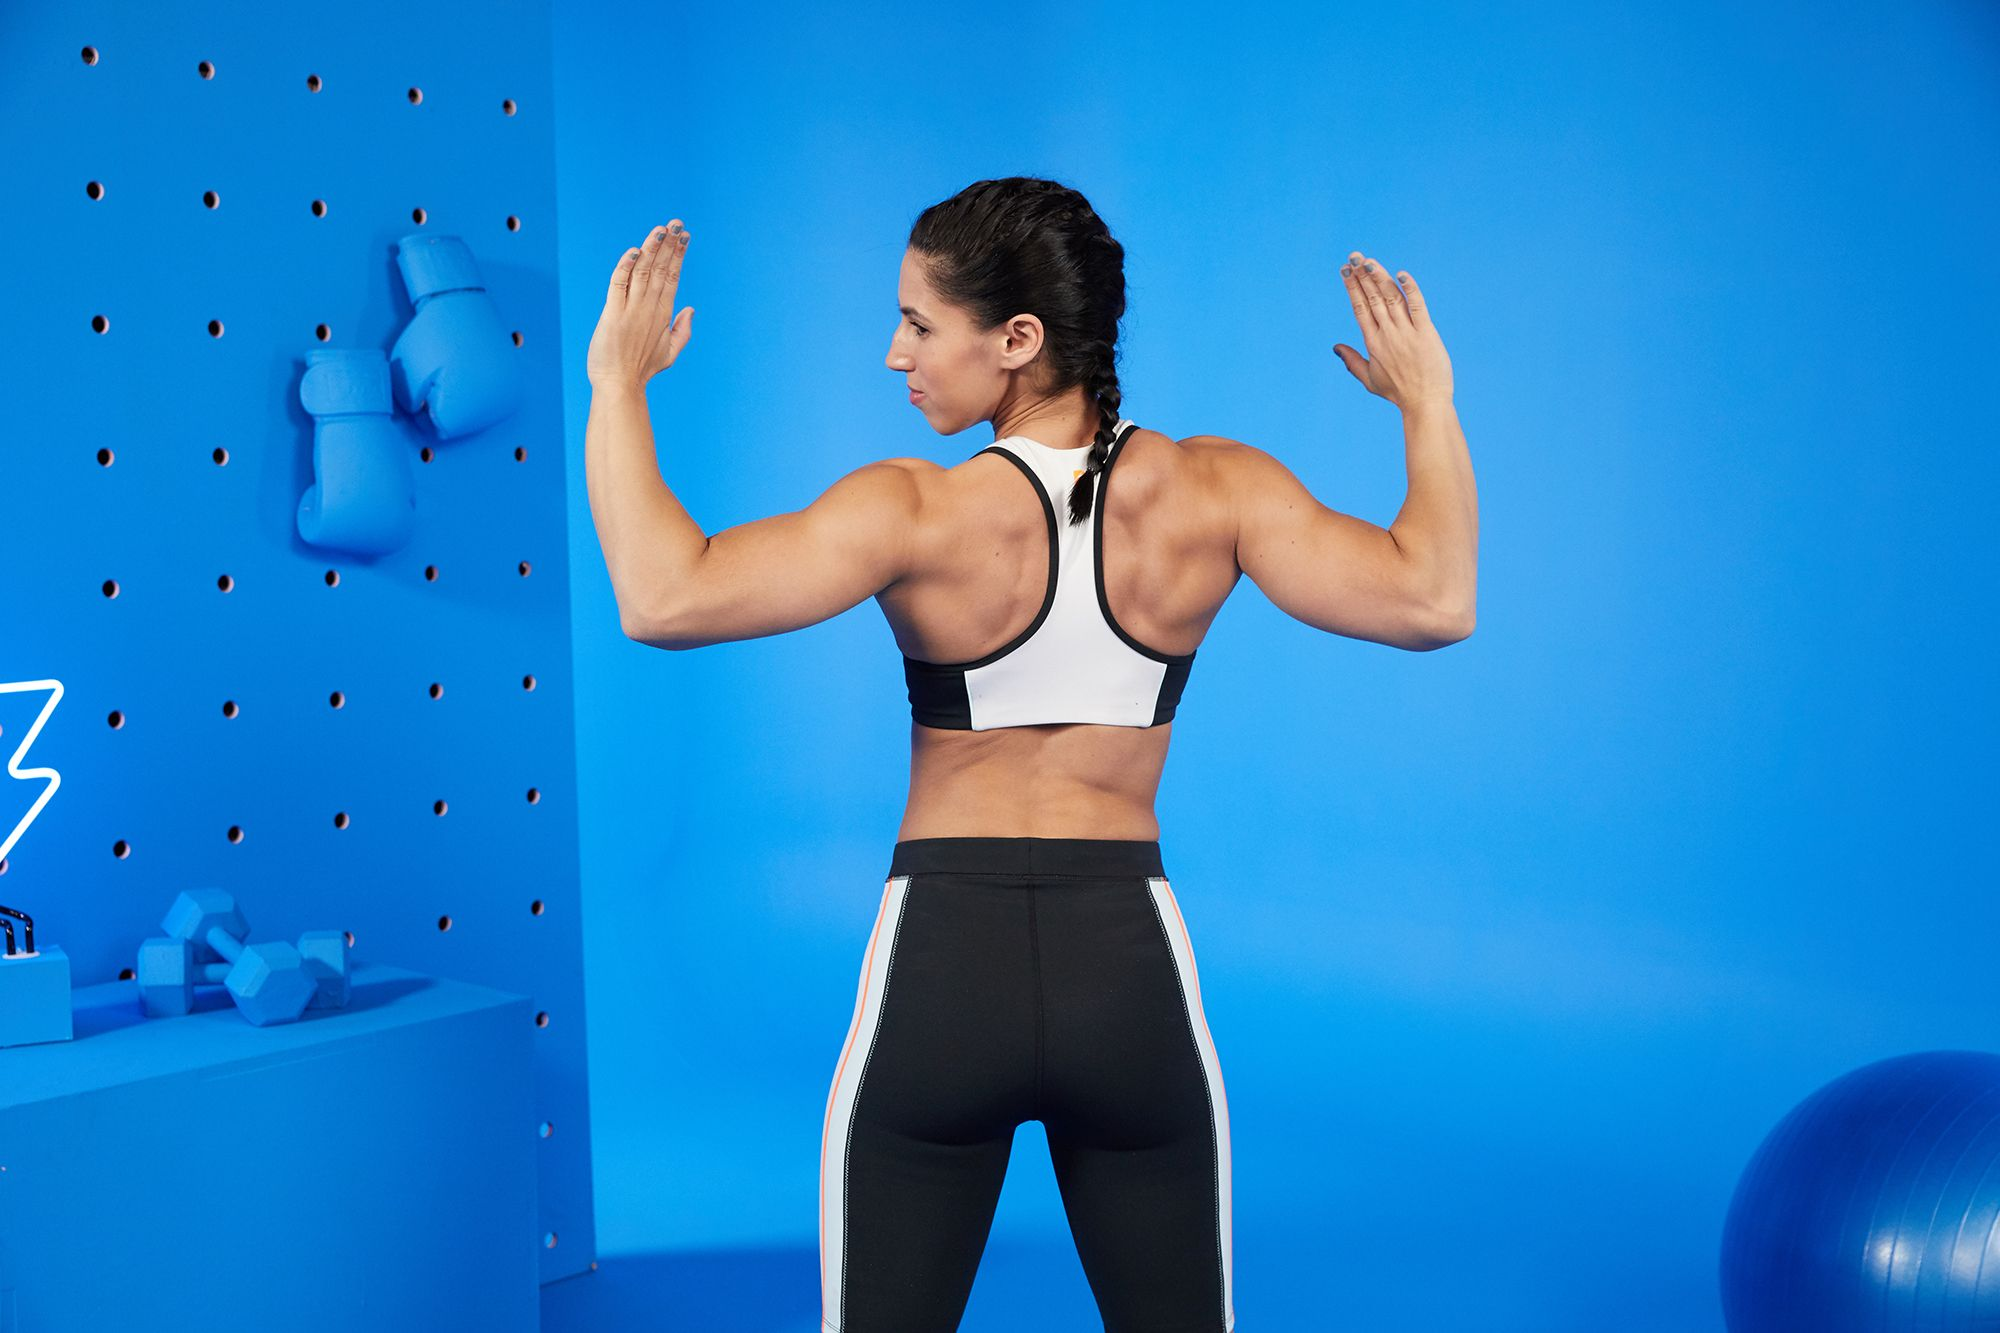 Image result for This Bodyweight Workout Will Shock Your System In All The Right Ways by womenshealthmag.com